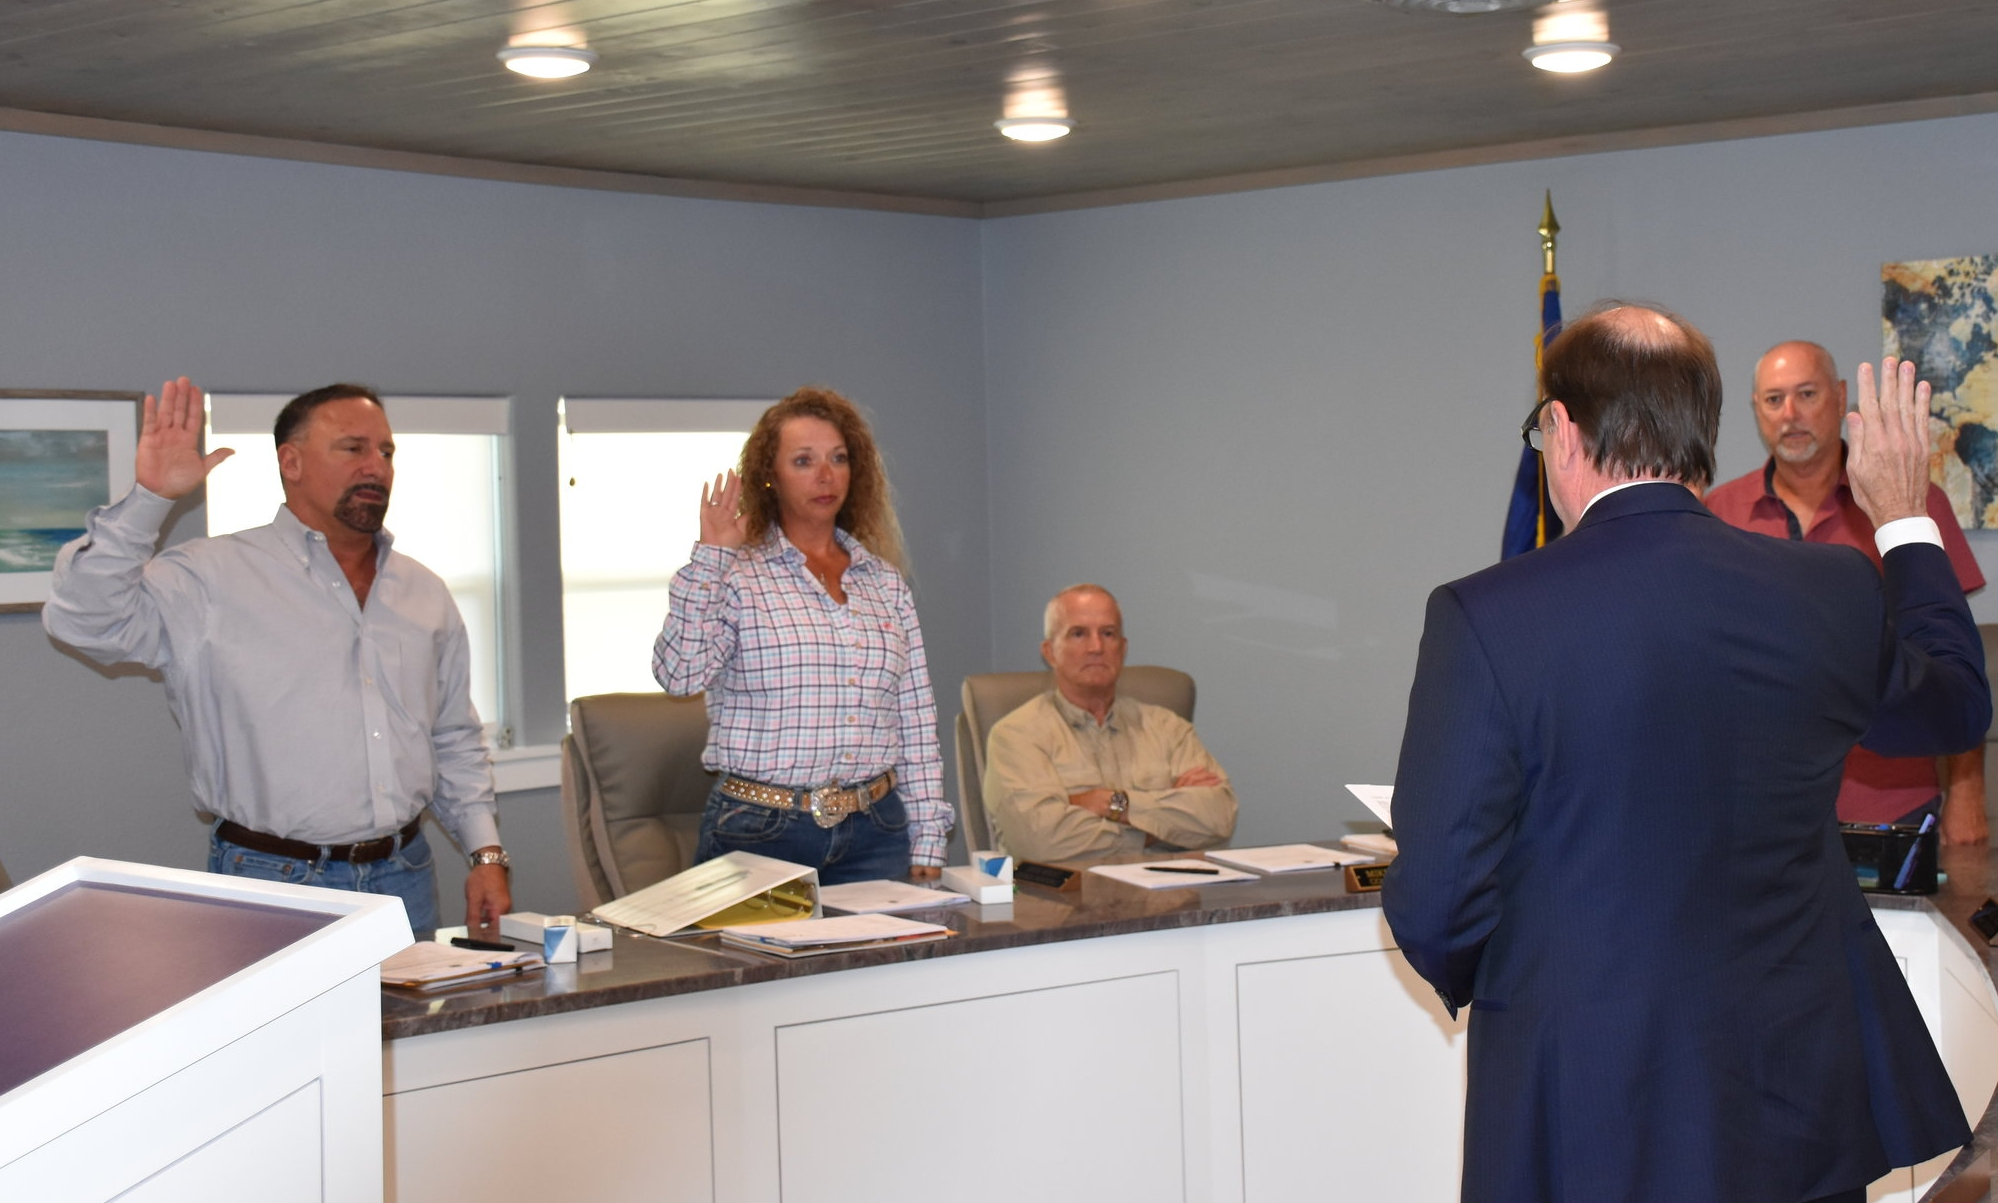 City Atty. Alan Petrov swearing-in new Council members, Mike Cassata for Position 1, Shari Wright for Position 2, and Steve Alongis for Mayor; also pictured sitting, Mike Fletcher, Council member, Position 3